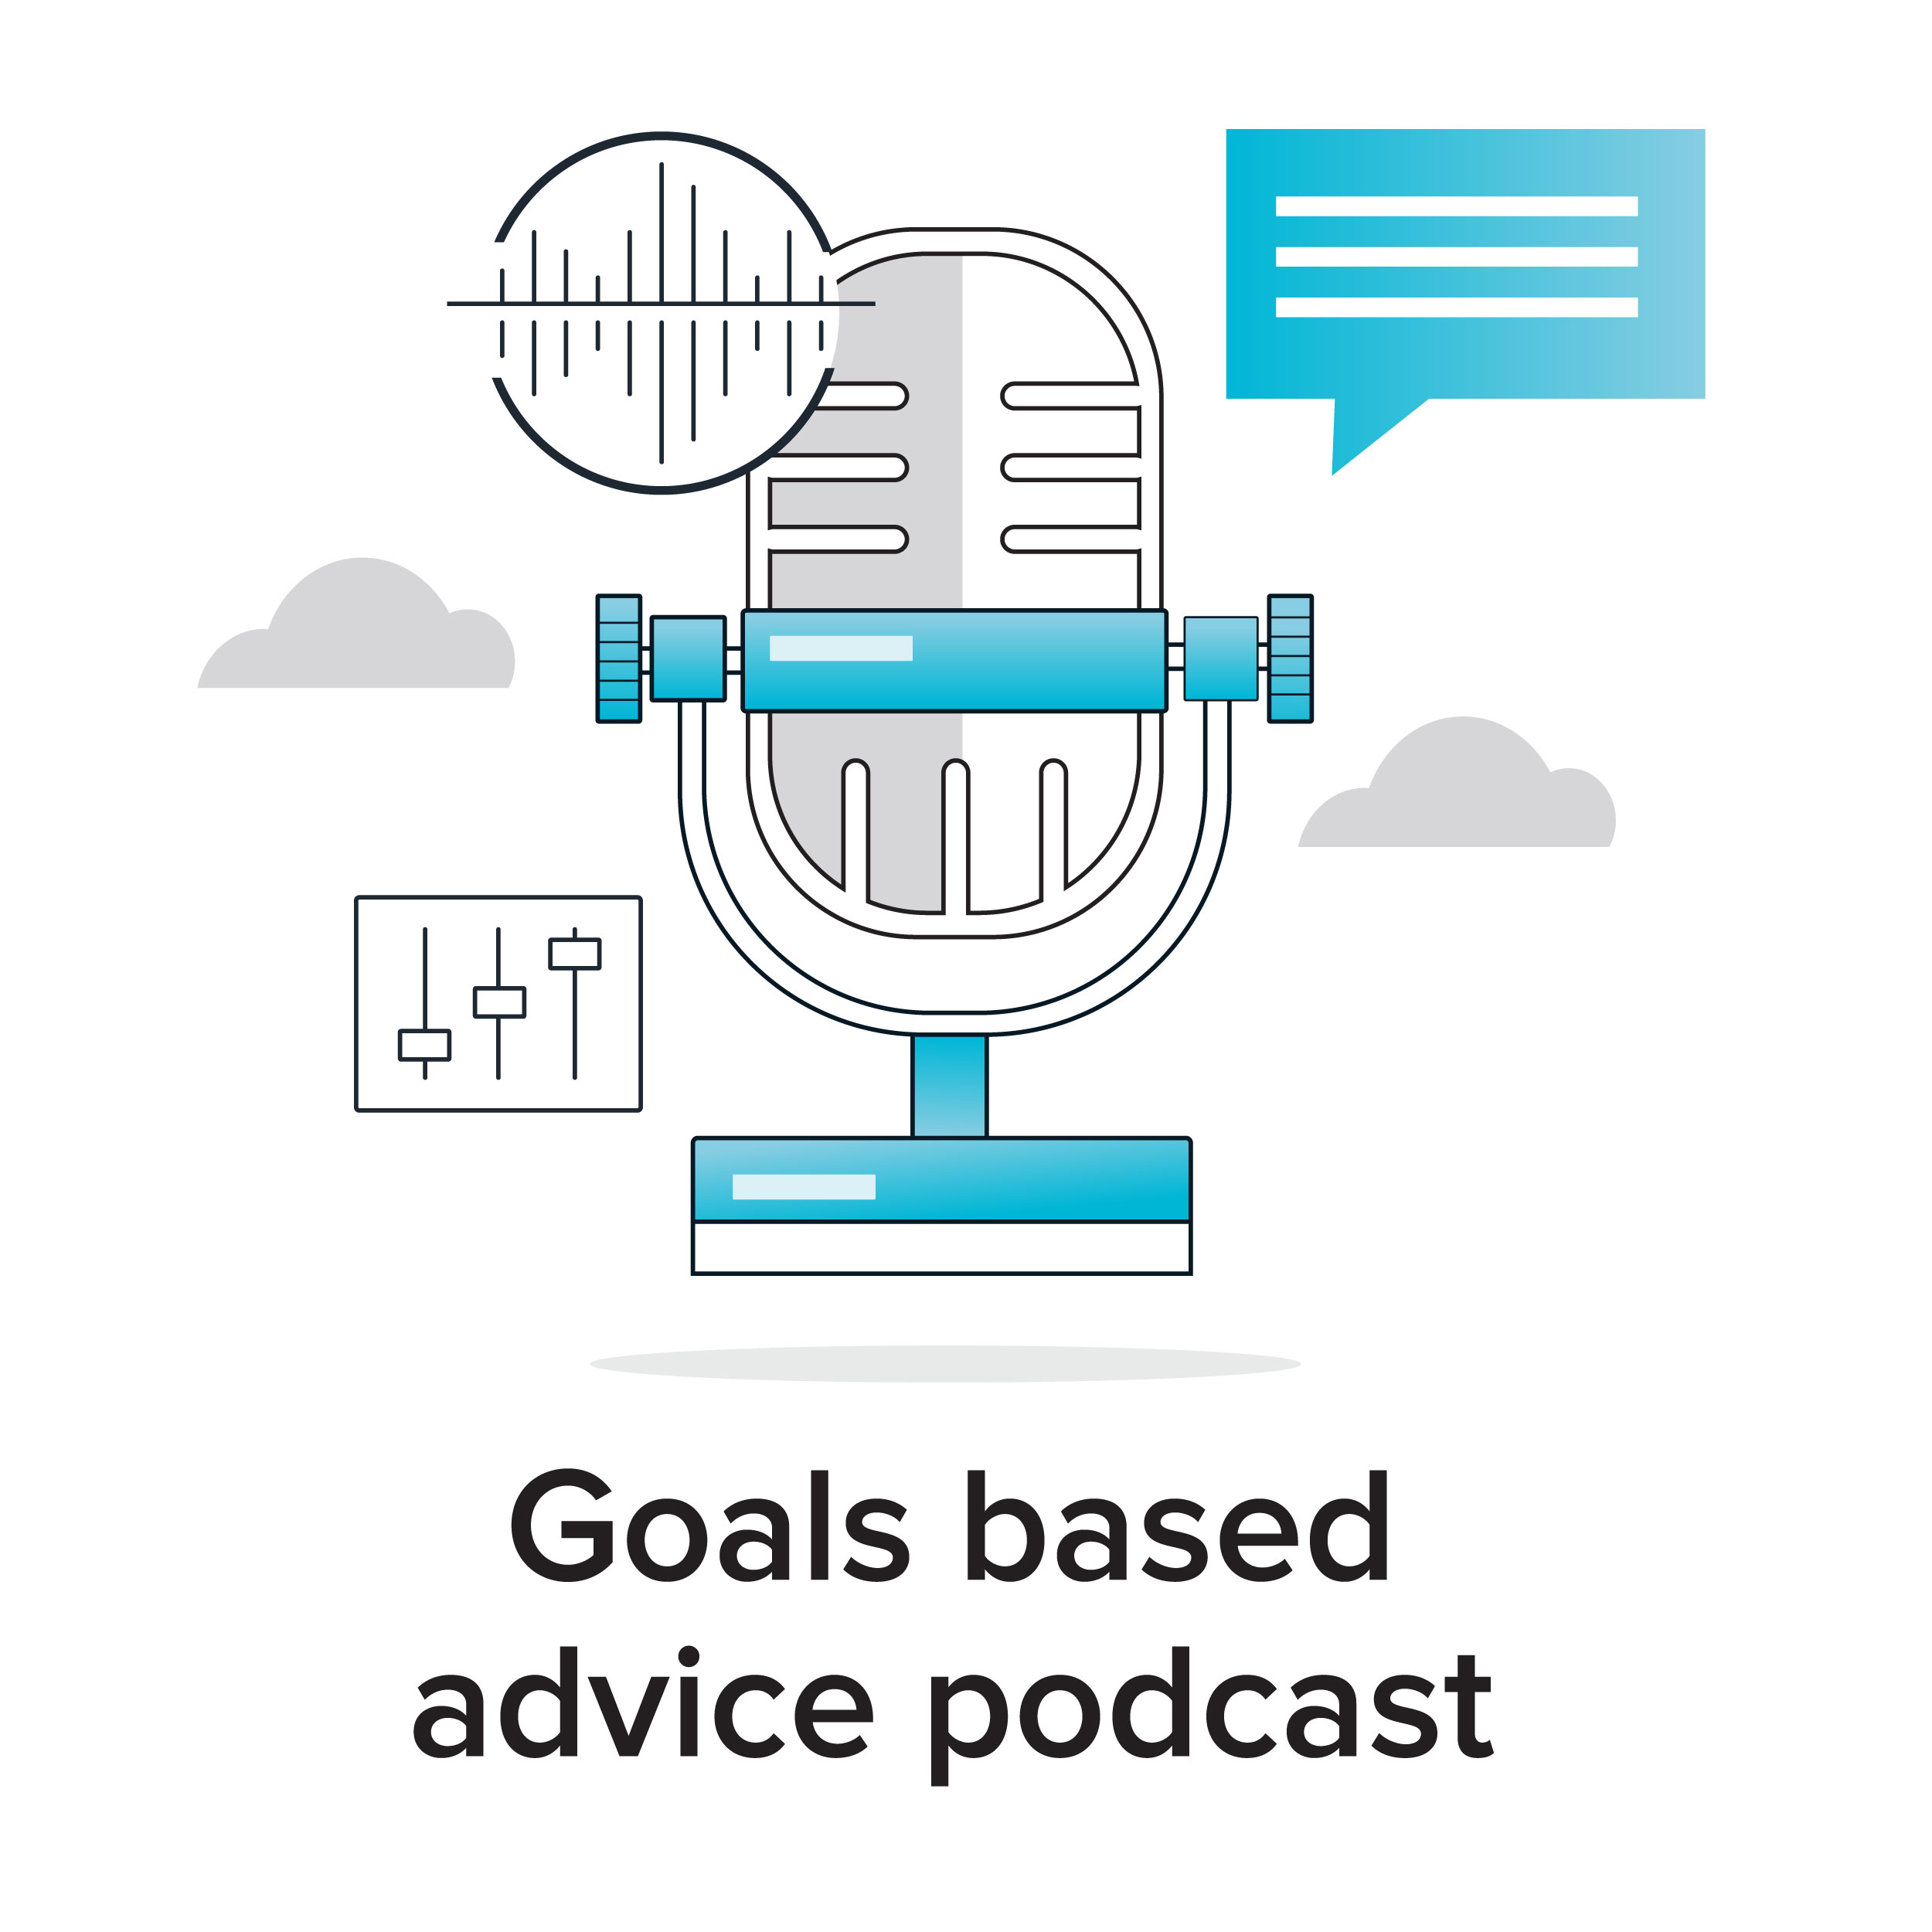 Introducing Goals-based advice to new clients through group workshops, with Noni Crawford